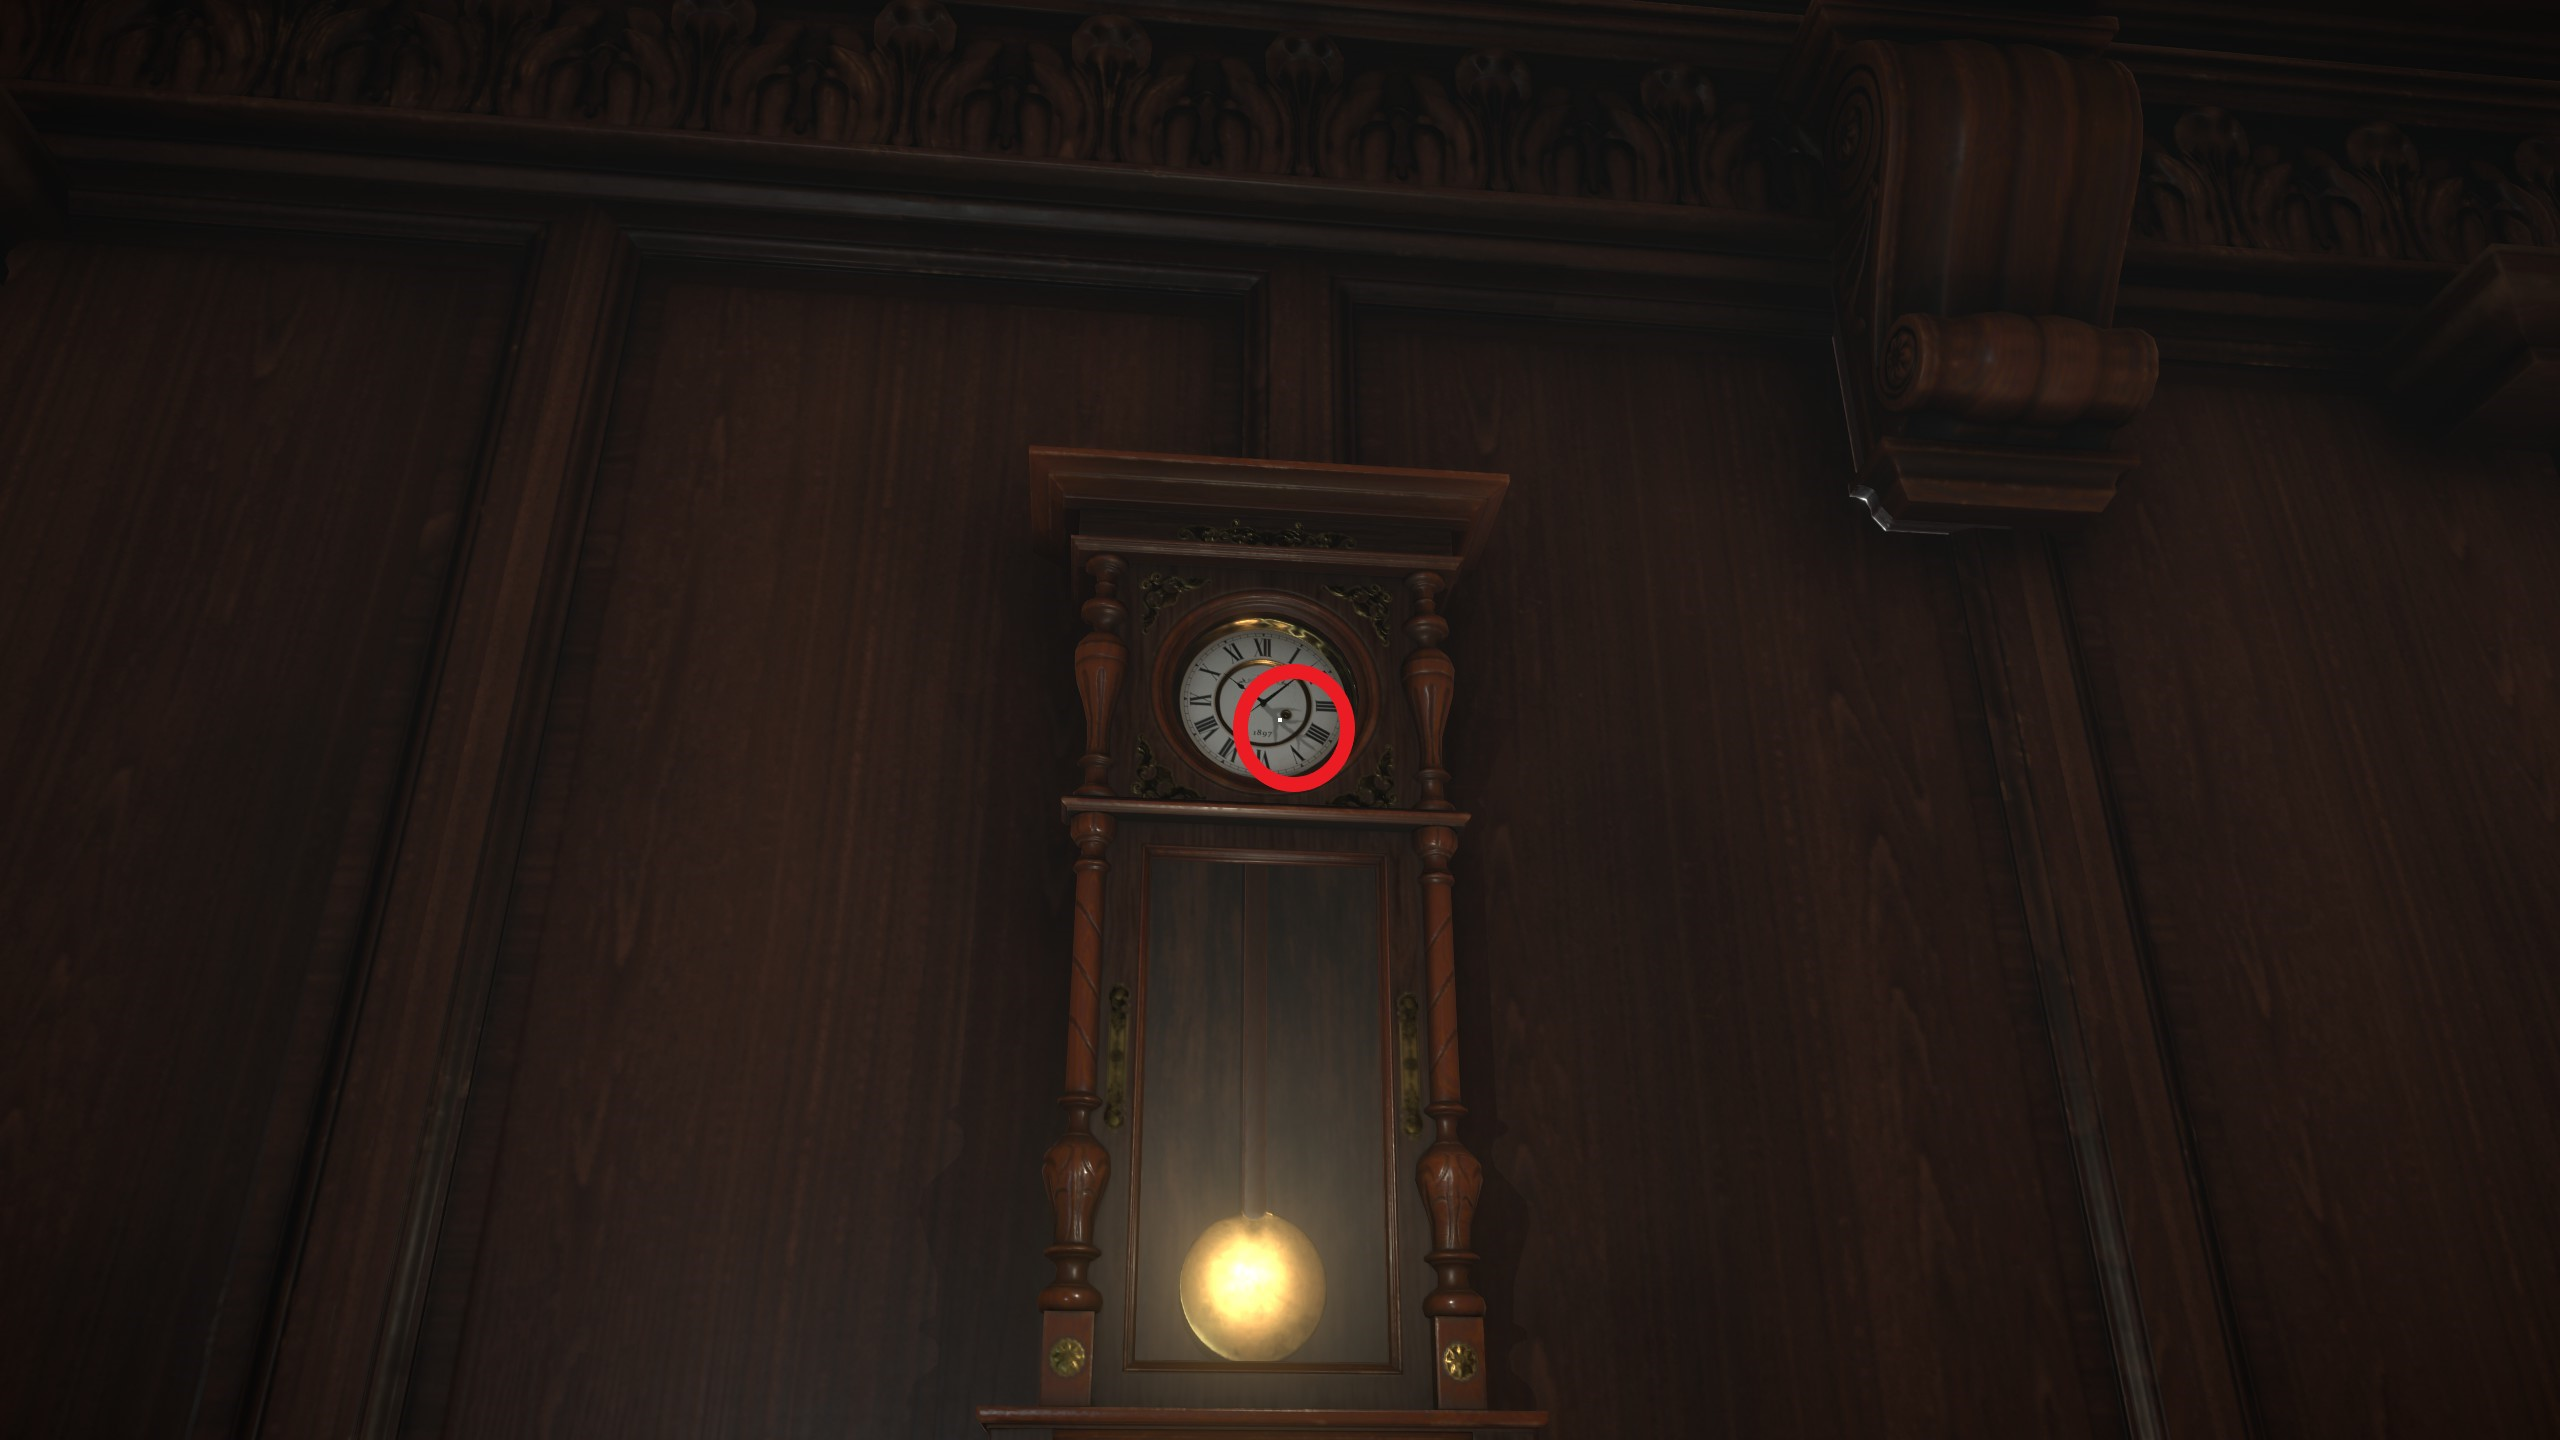 Dagon - Hints for All Hidden Trivia in Game Tips - The Scientist - 671746C